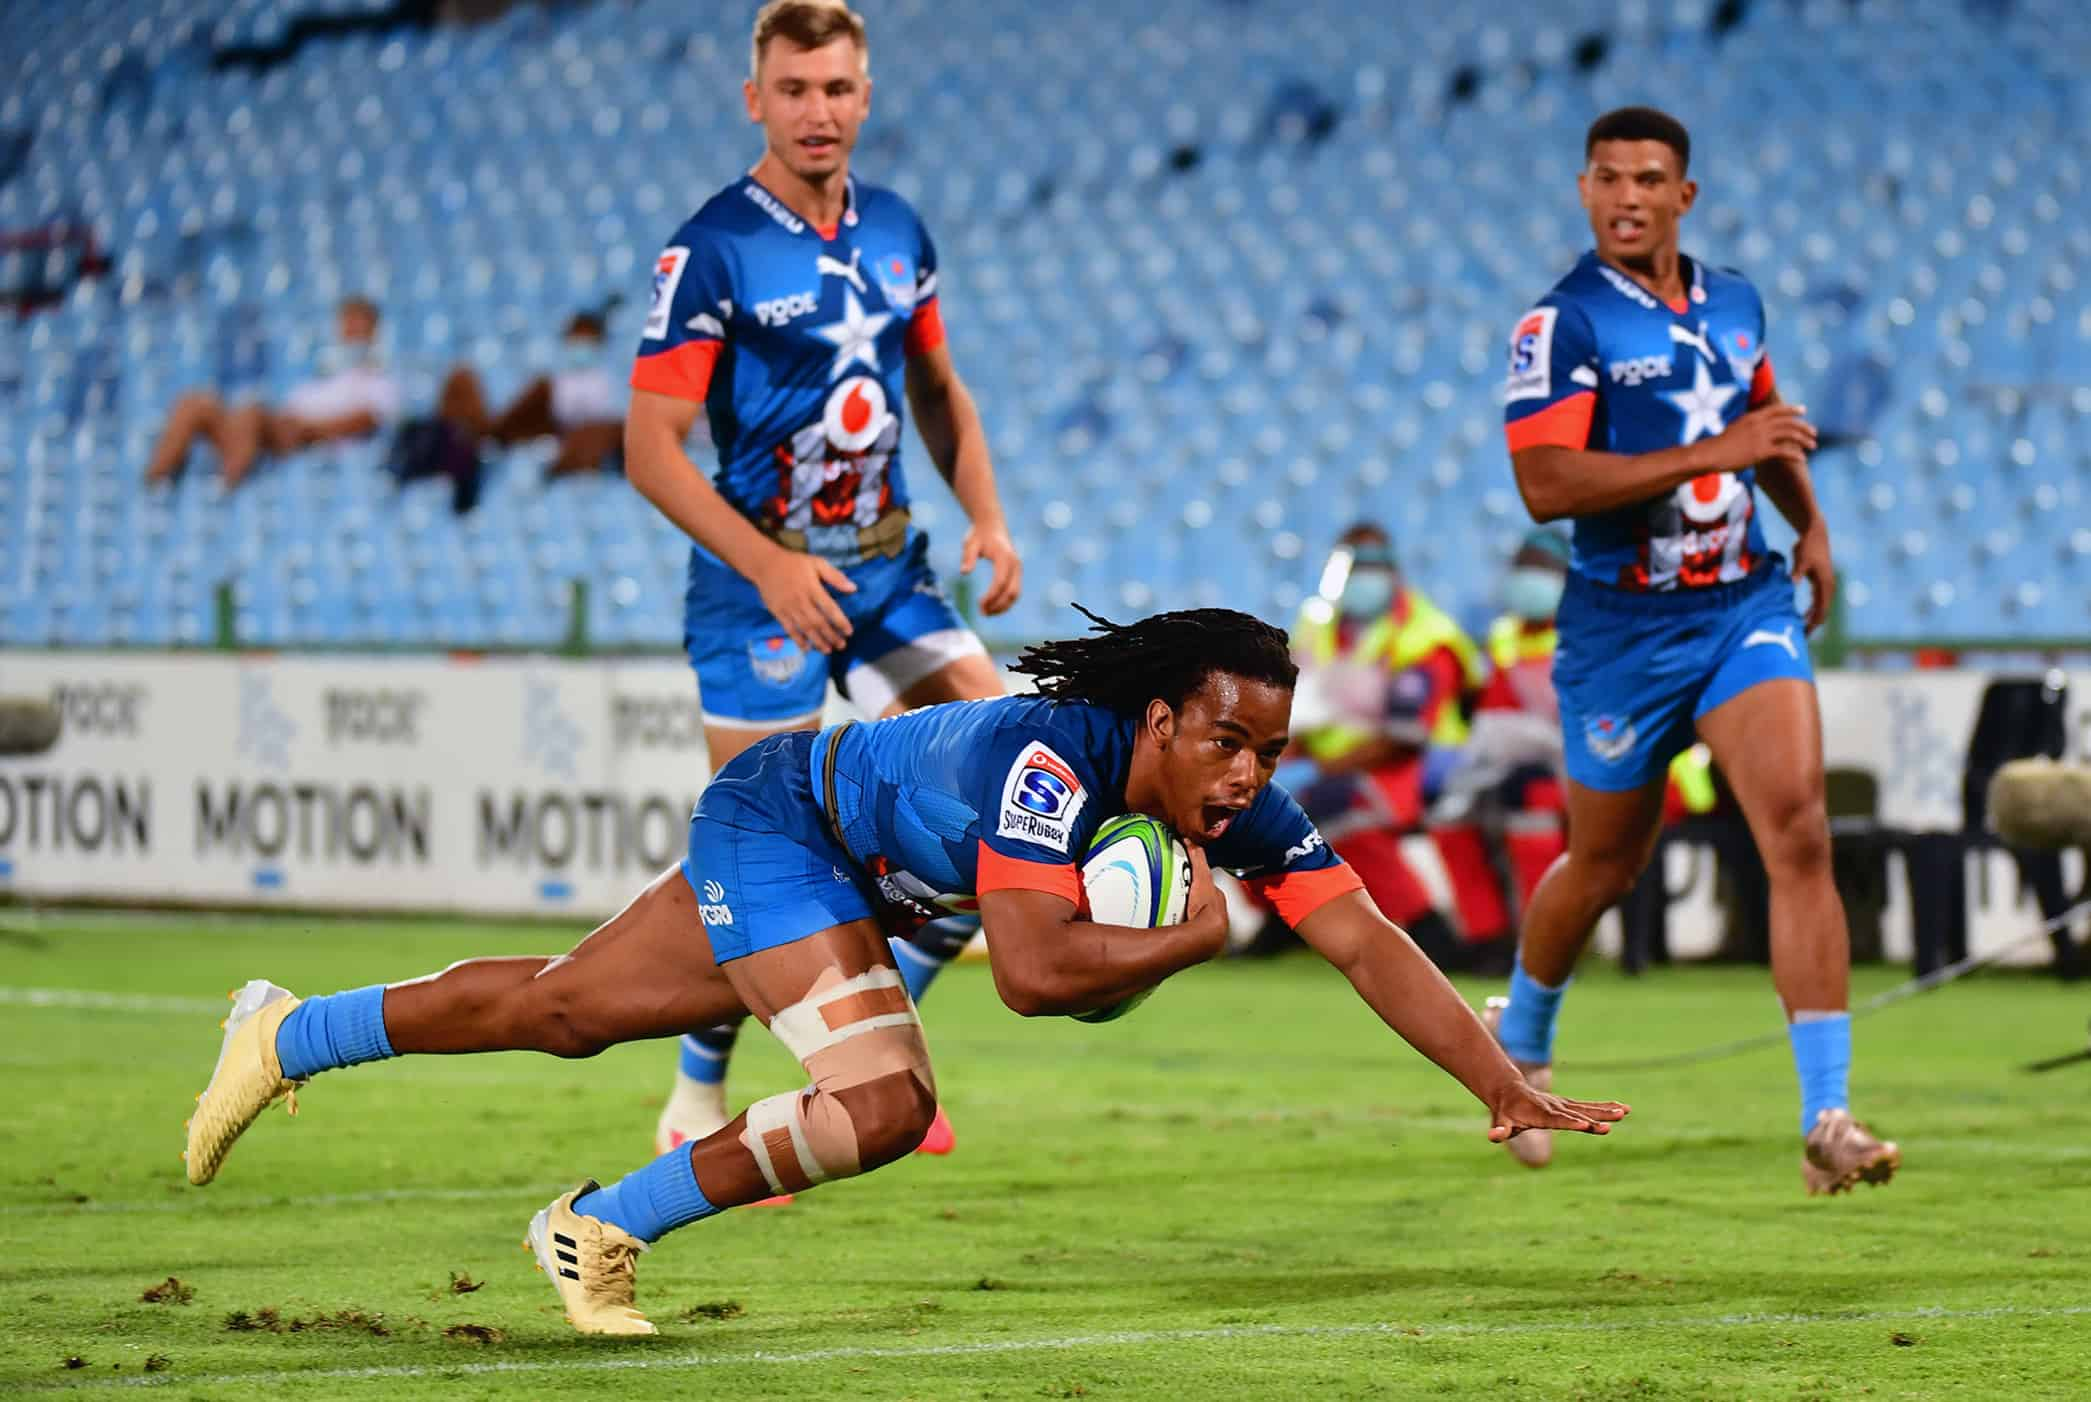 Jake's Bulls deservedly unlock Super Rugby title